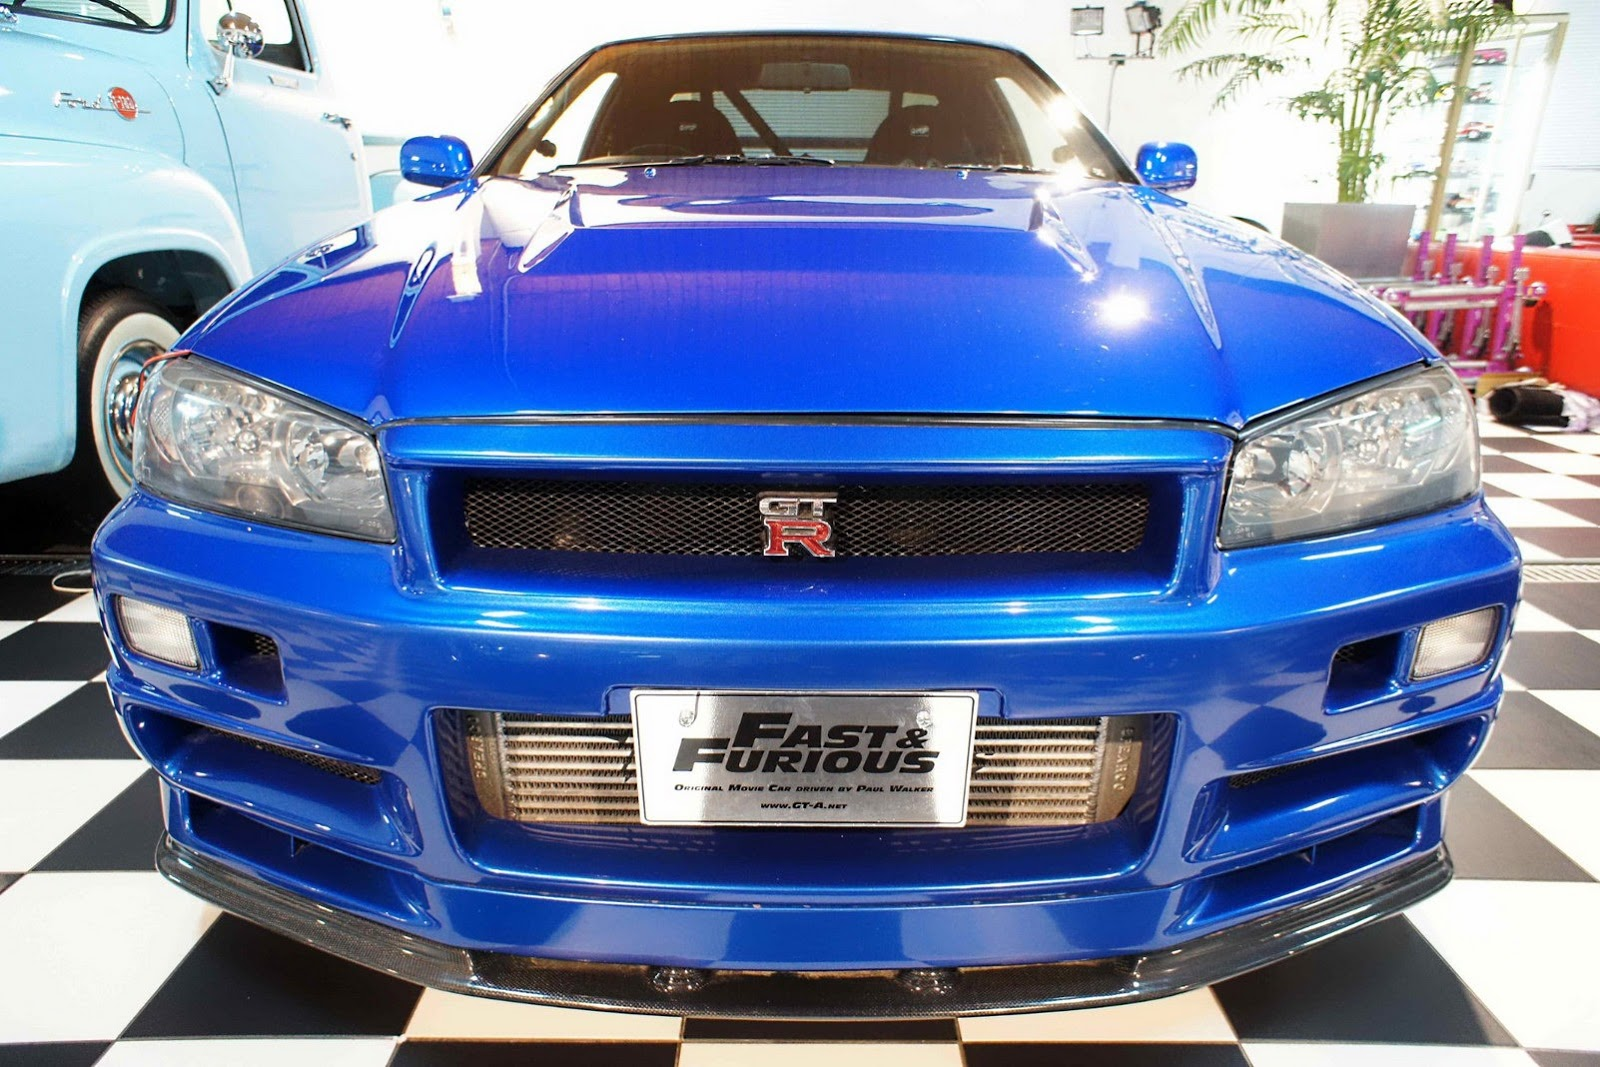 Paul Walker Nissan Skyline R34 GT-R (3)